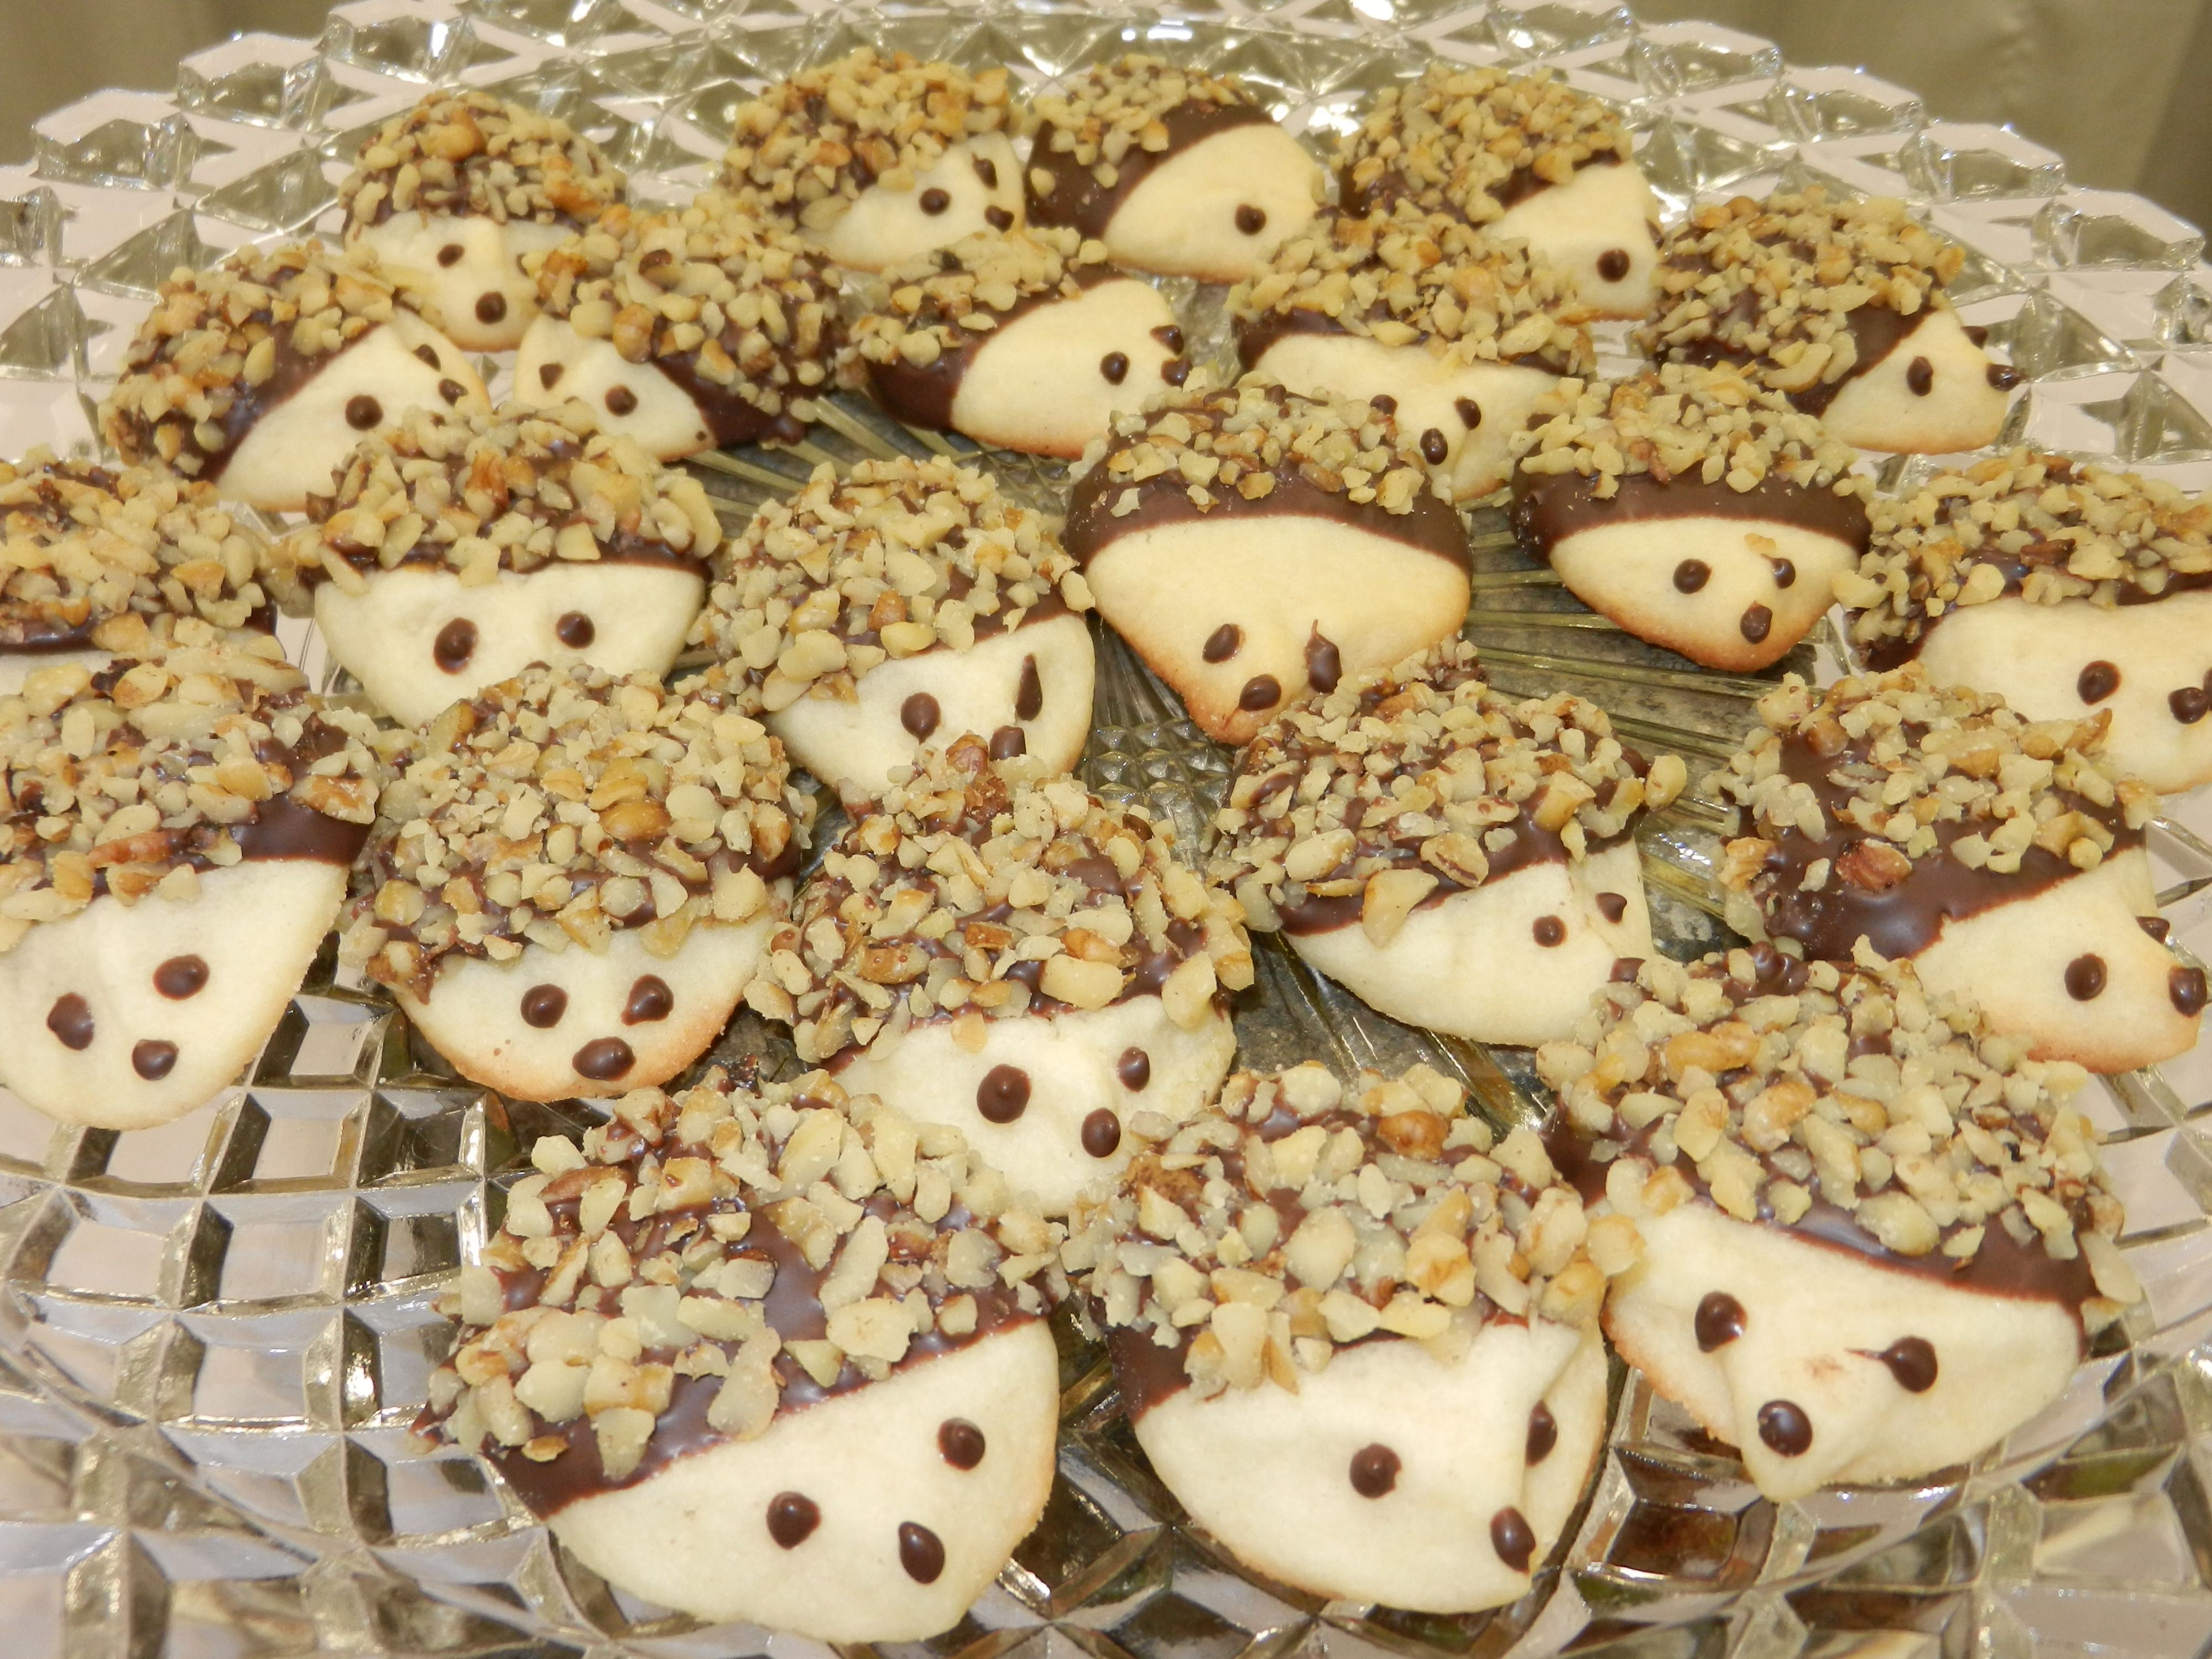 woodland themed baby shower food - Hedgehog cookies - this picture is of the cookies we made using the recipe in the link